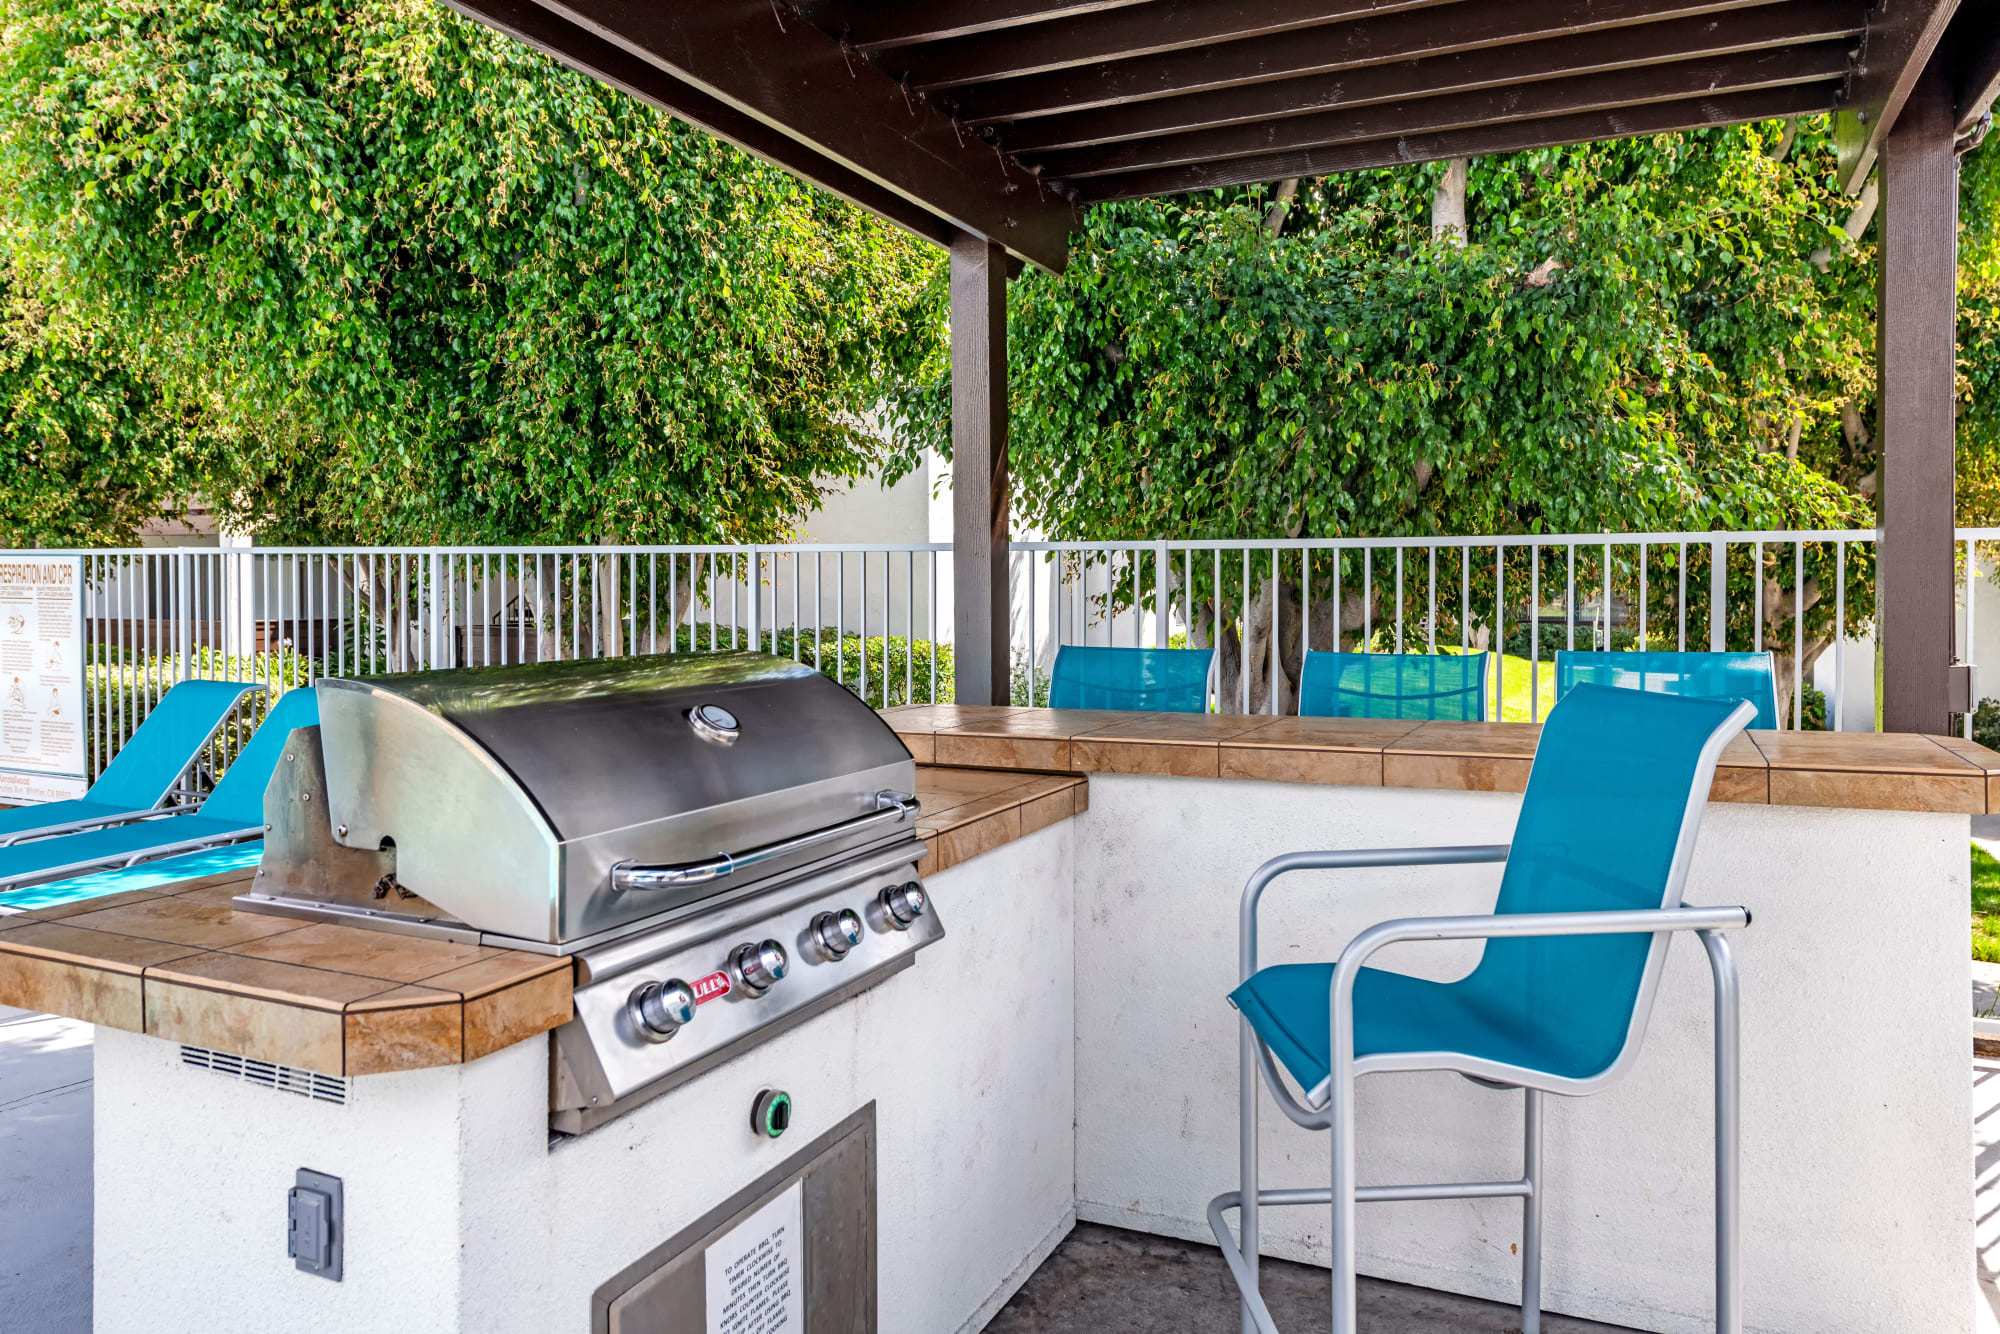 Poolside covered BBQ area at Kendallwood Apartments in Whittier, California